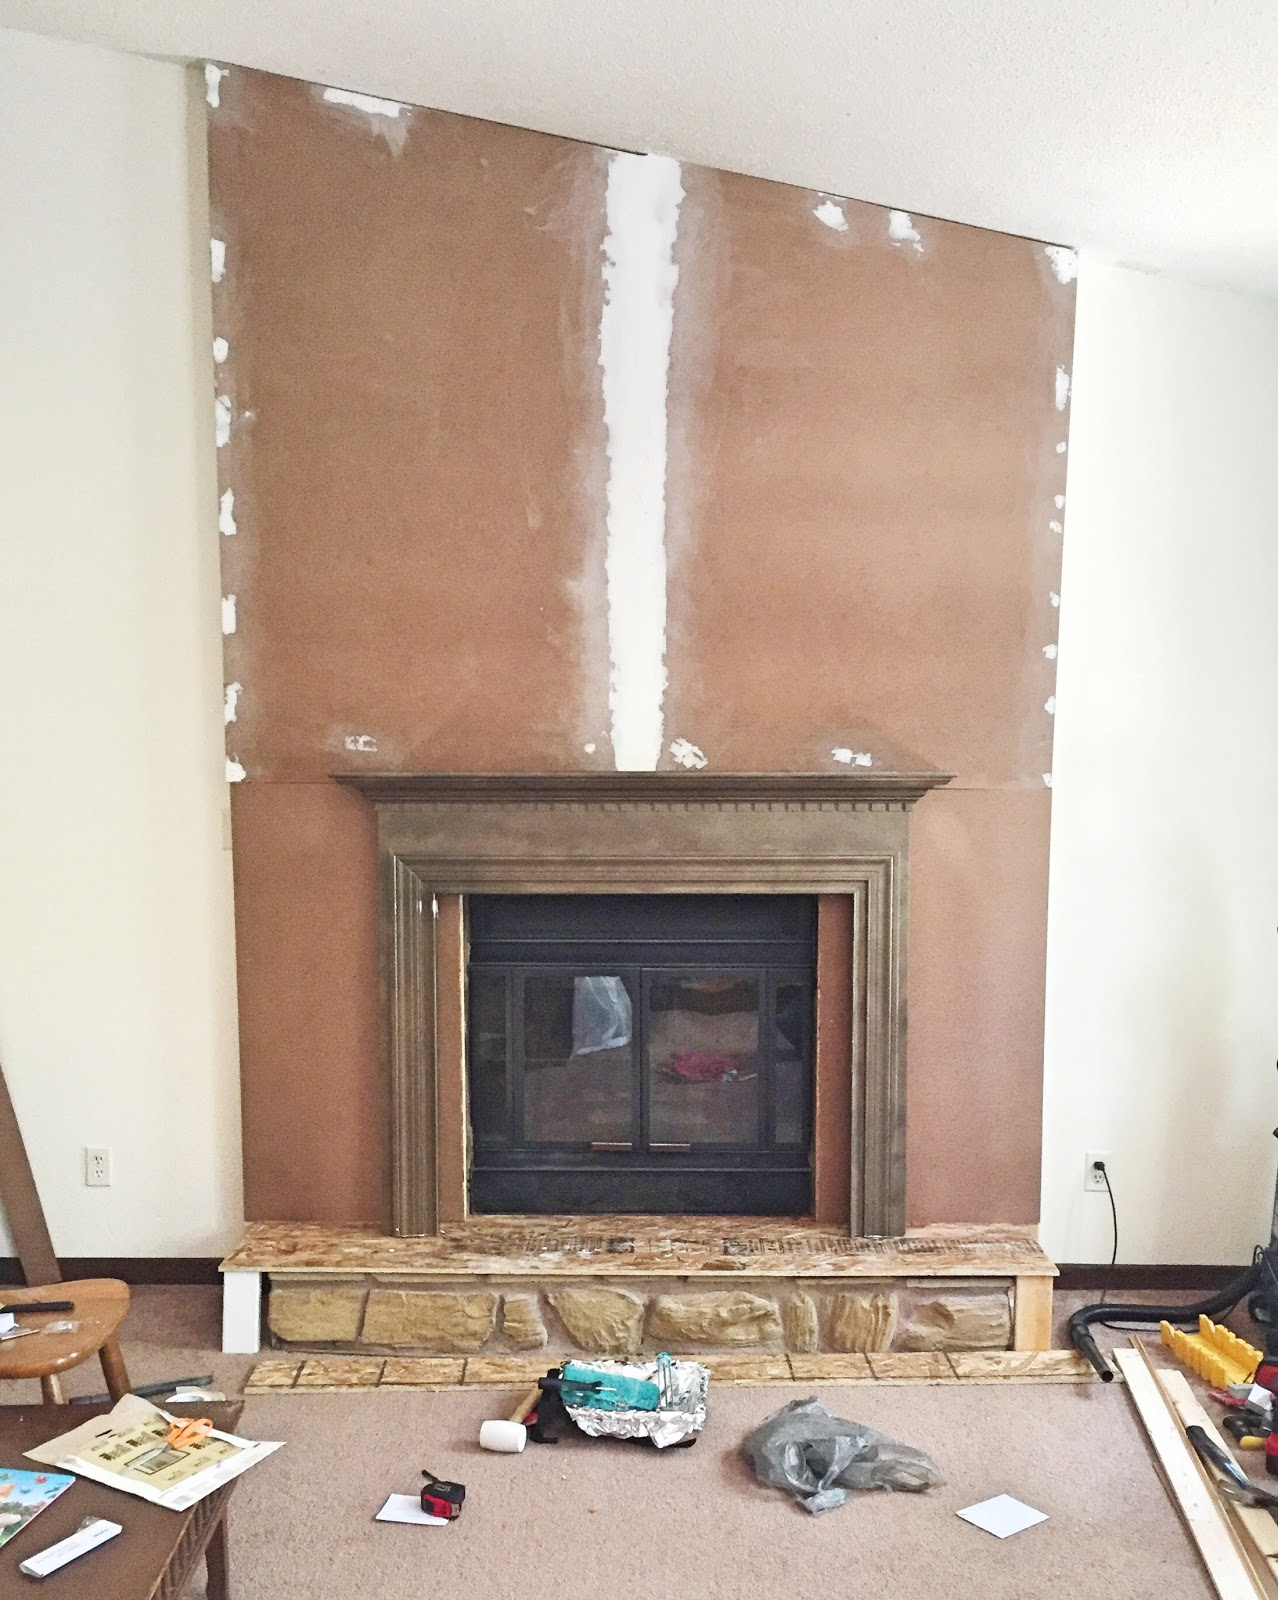 One Room Challenge Spring 2016, ORC, Rental Approved DIY, Faux Fireplace Facade, Temporary fireplace, domicile 37